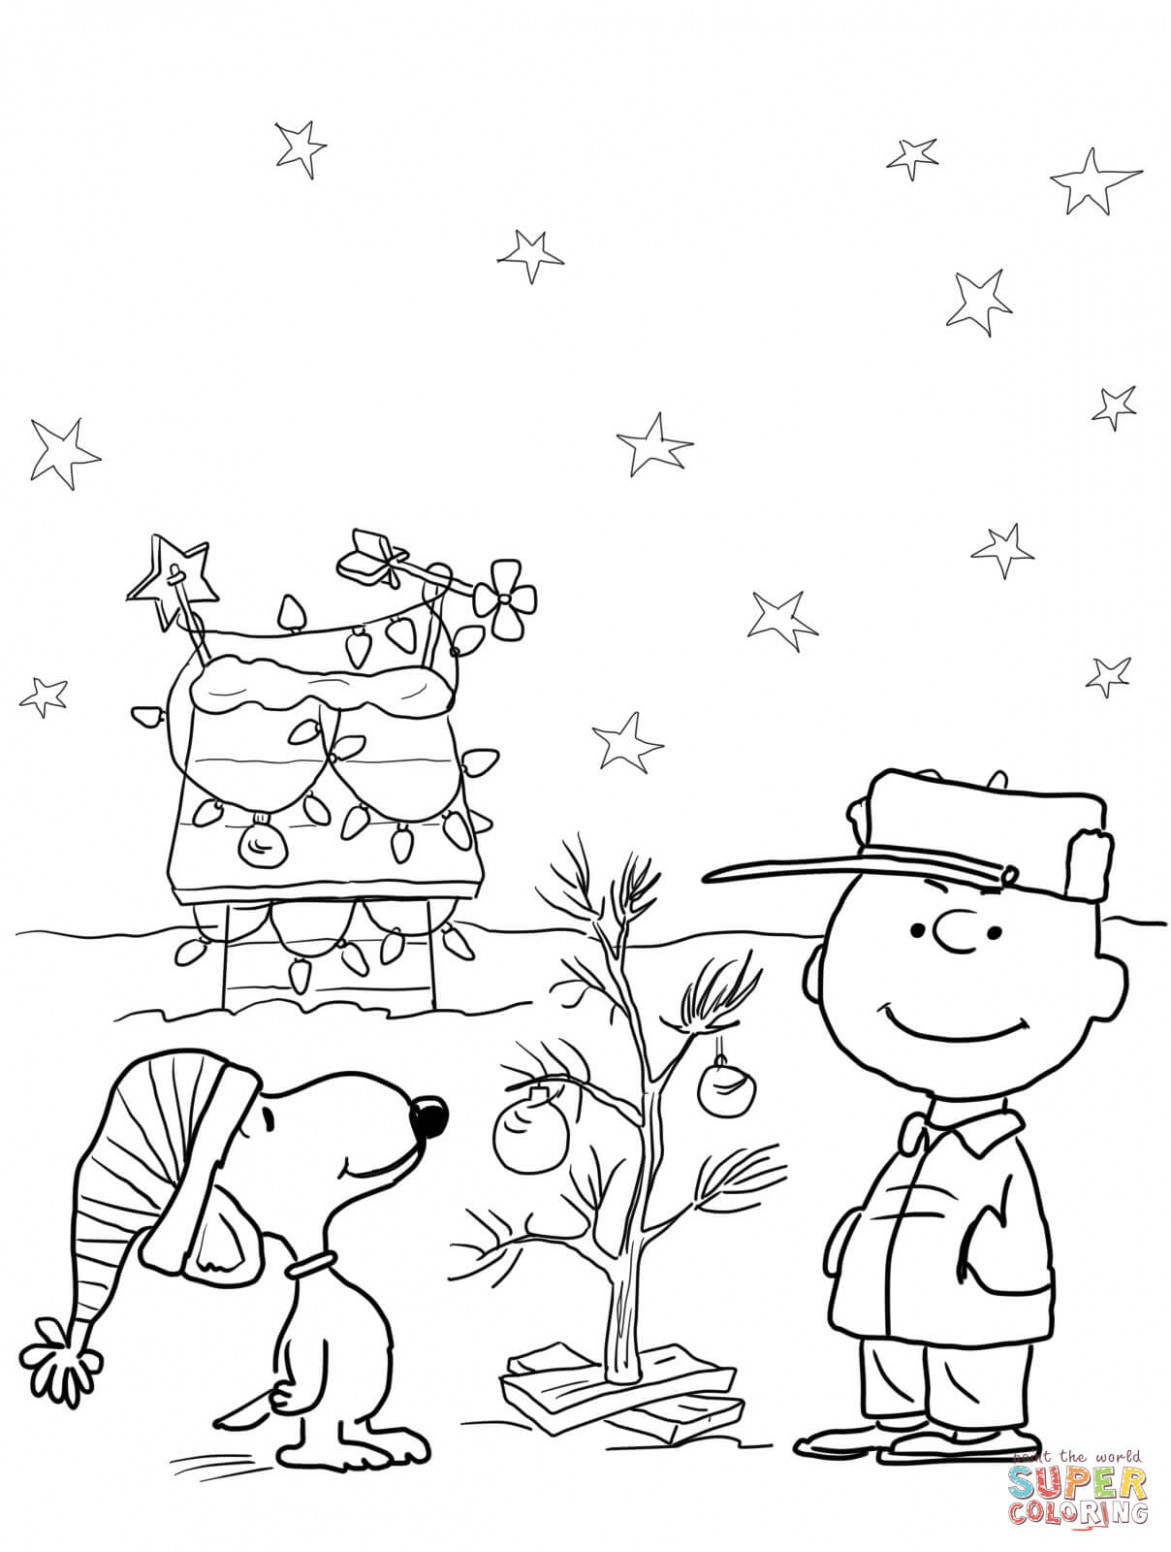 Charlie Brown Christmas coloring page   Free Printable Coloring Pages